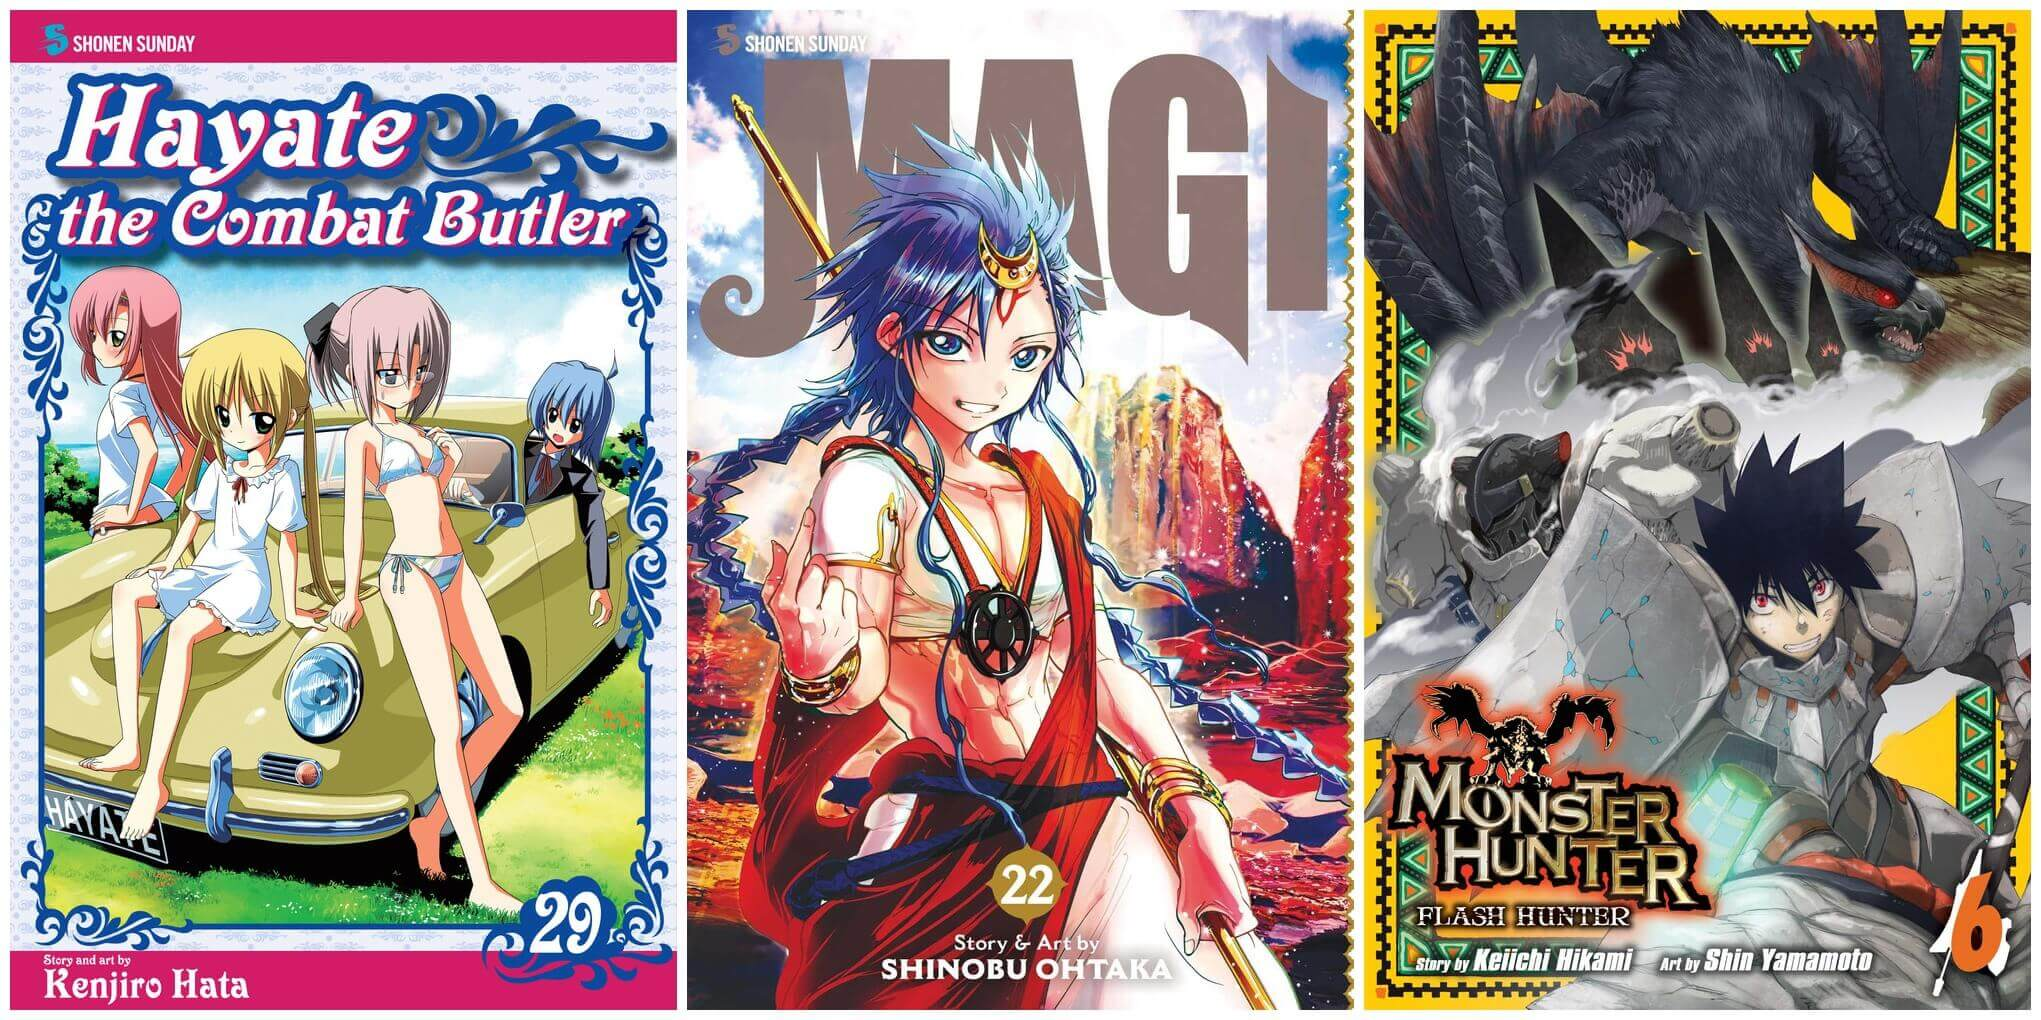 February 2017 Manga Releases Covers of Hayate the Combat Butler, Magi, and Monster Hunter: Flash Hunter.